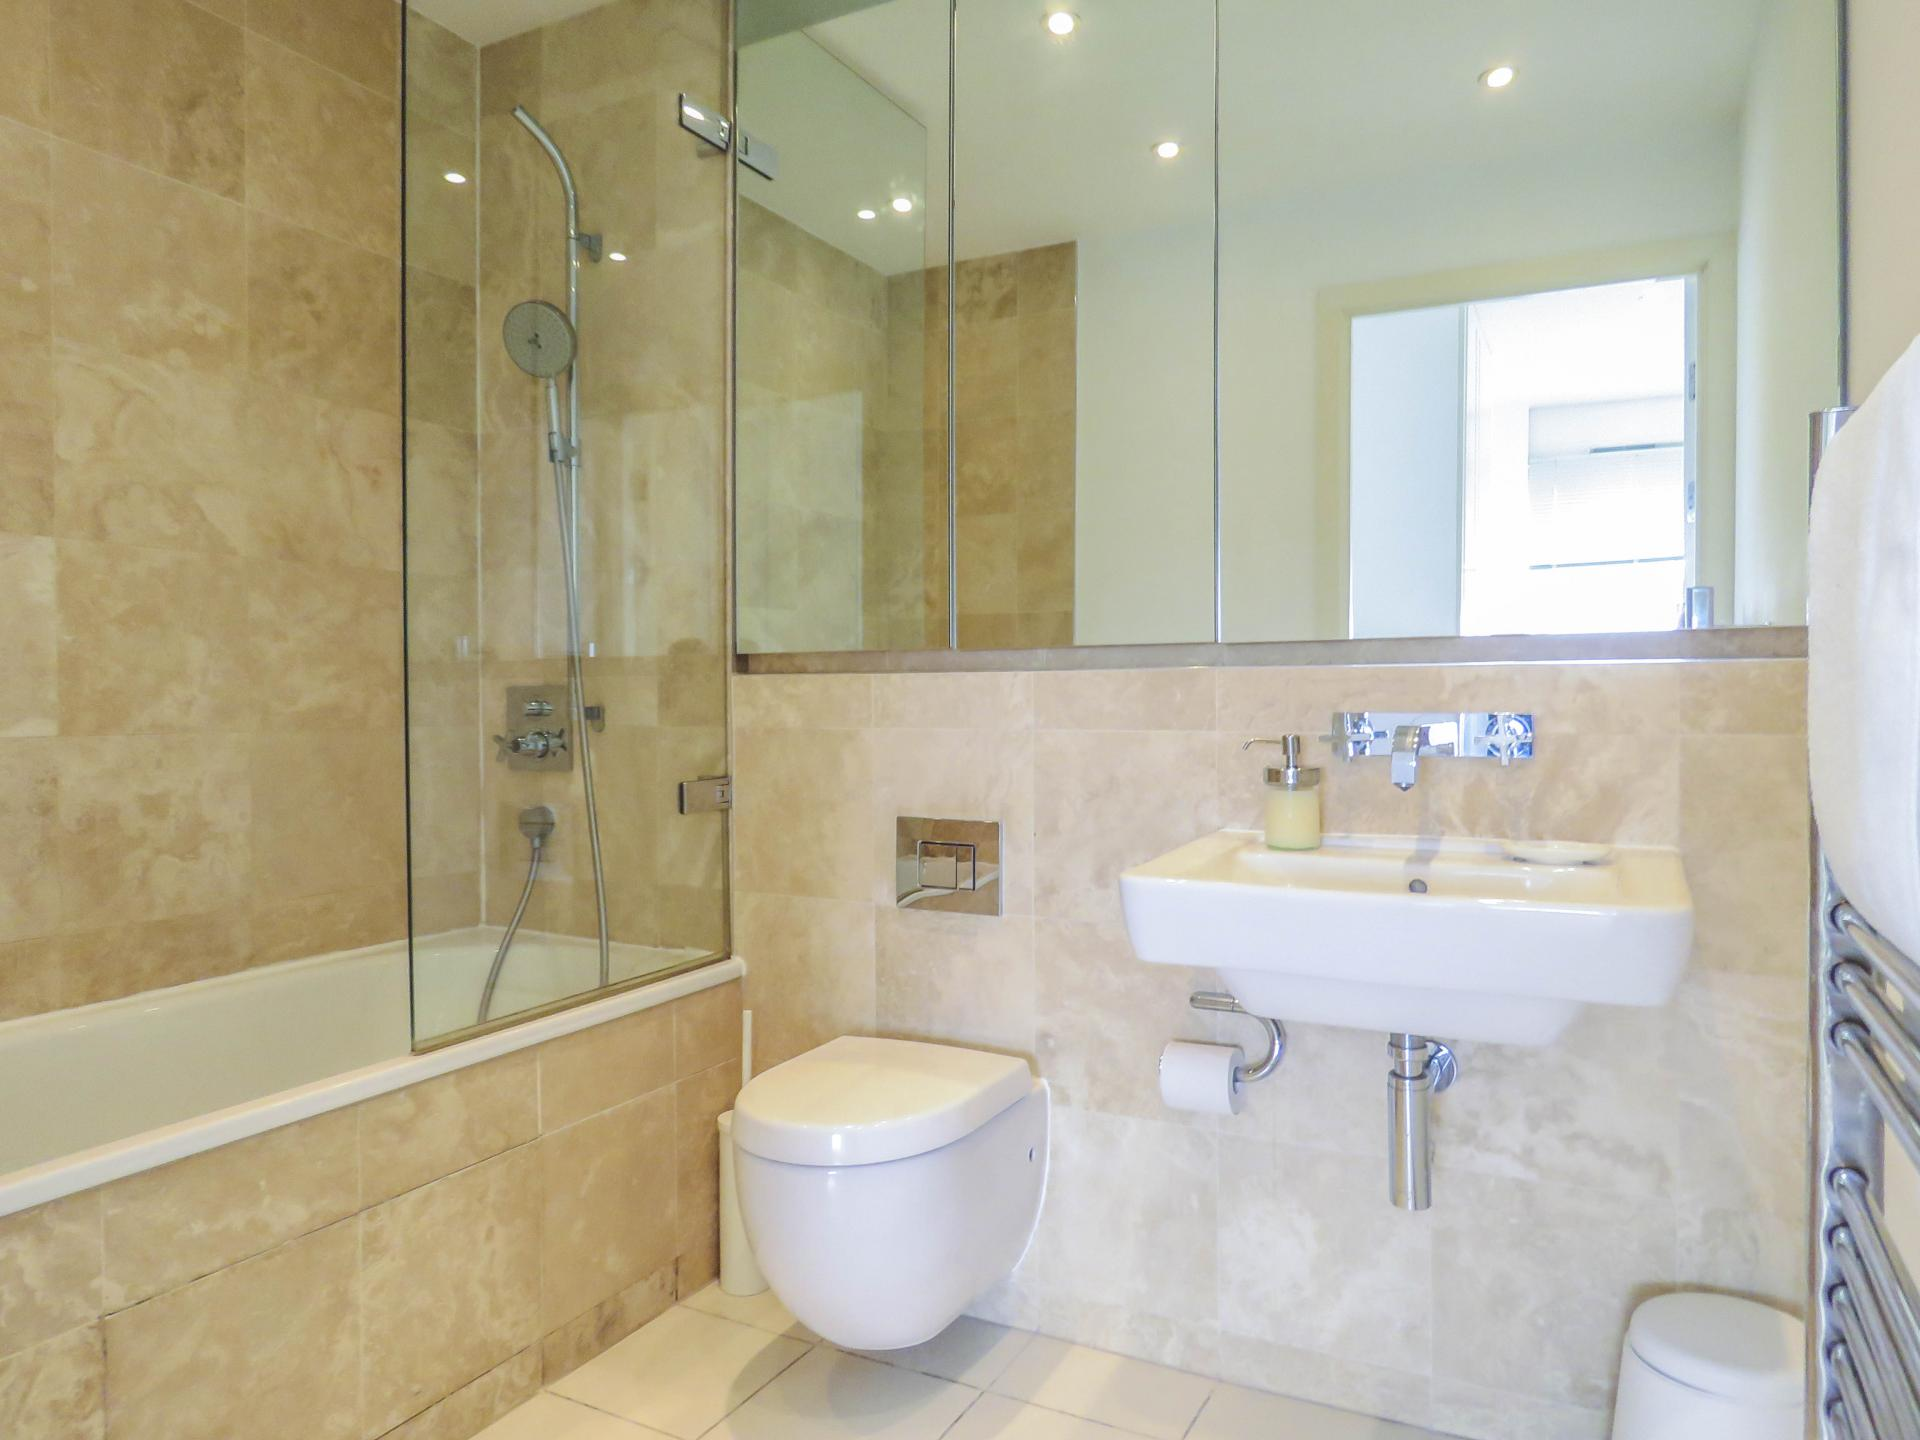 Bathroom at The Cube Serviced Apartments